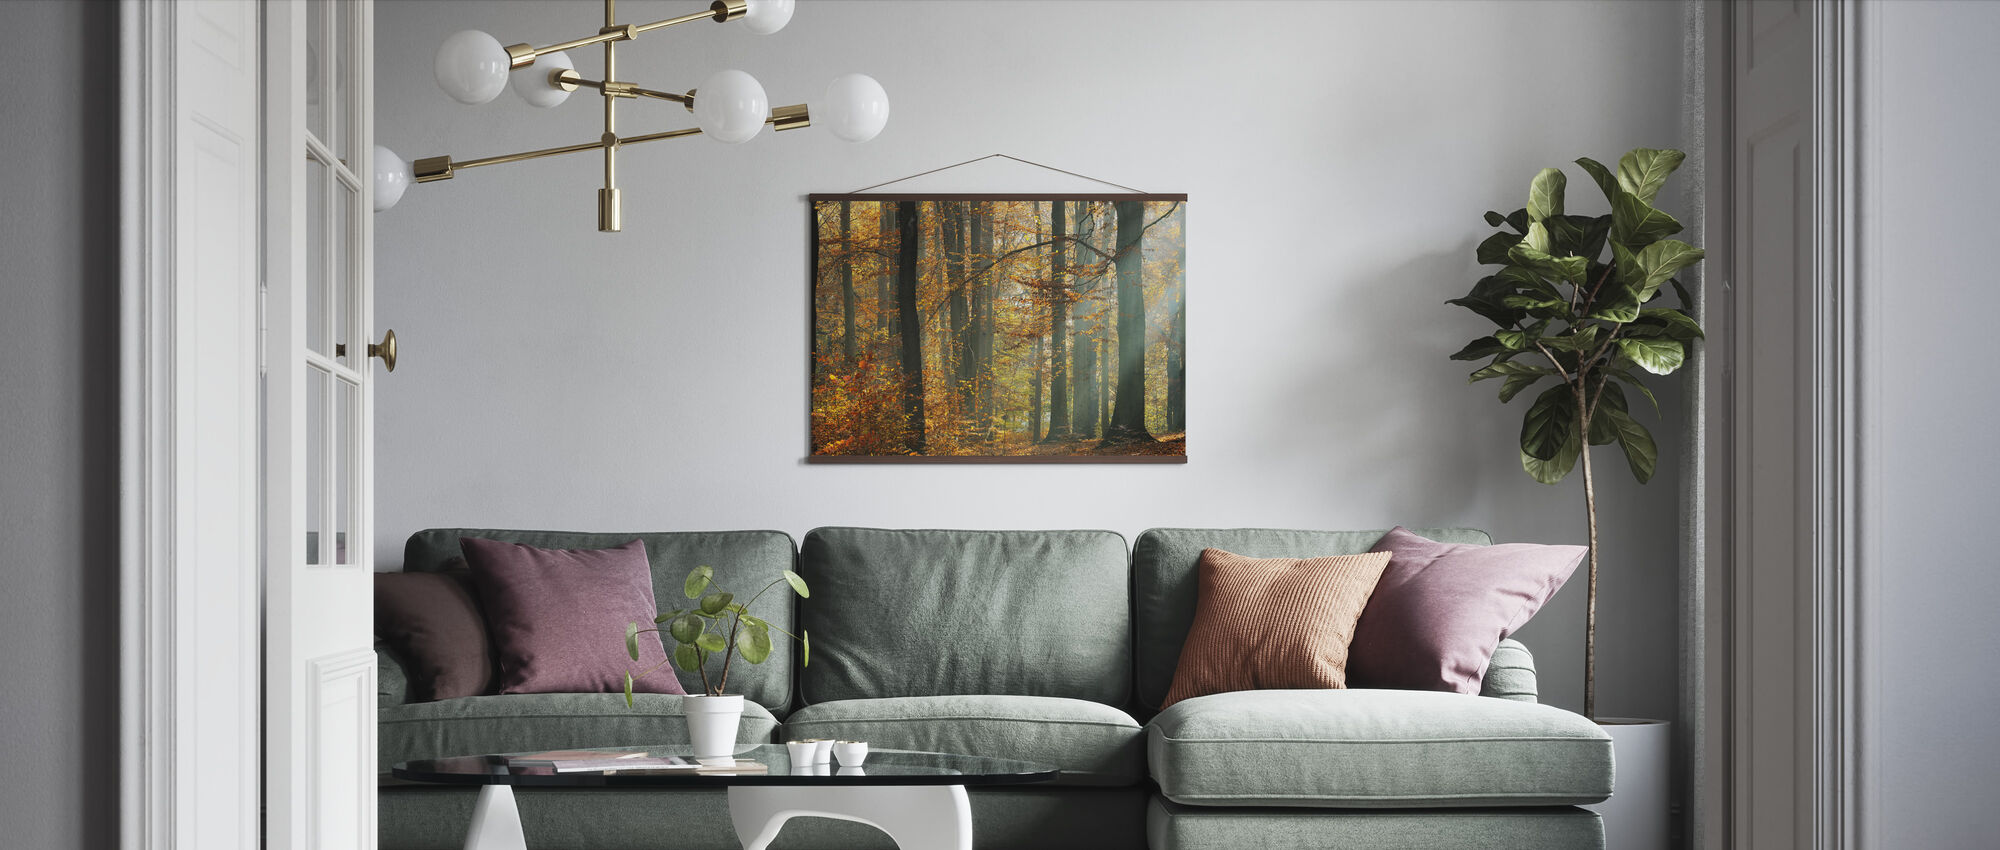 Sunbeams in a Colorful Autumnal Forest - Poster - Living Room